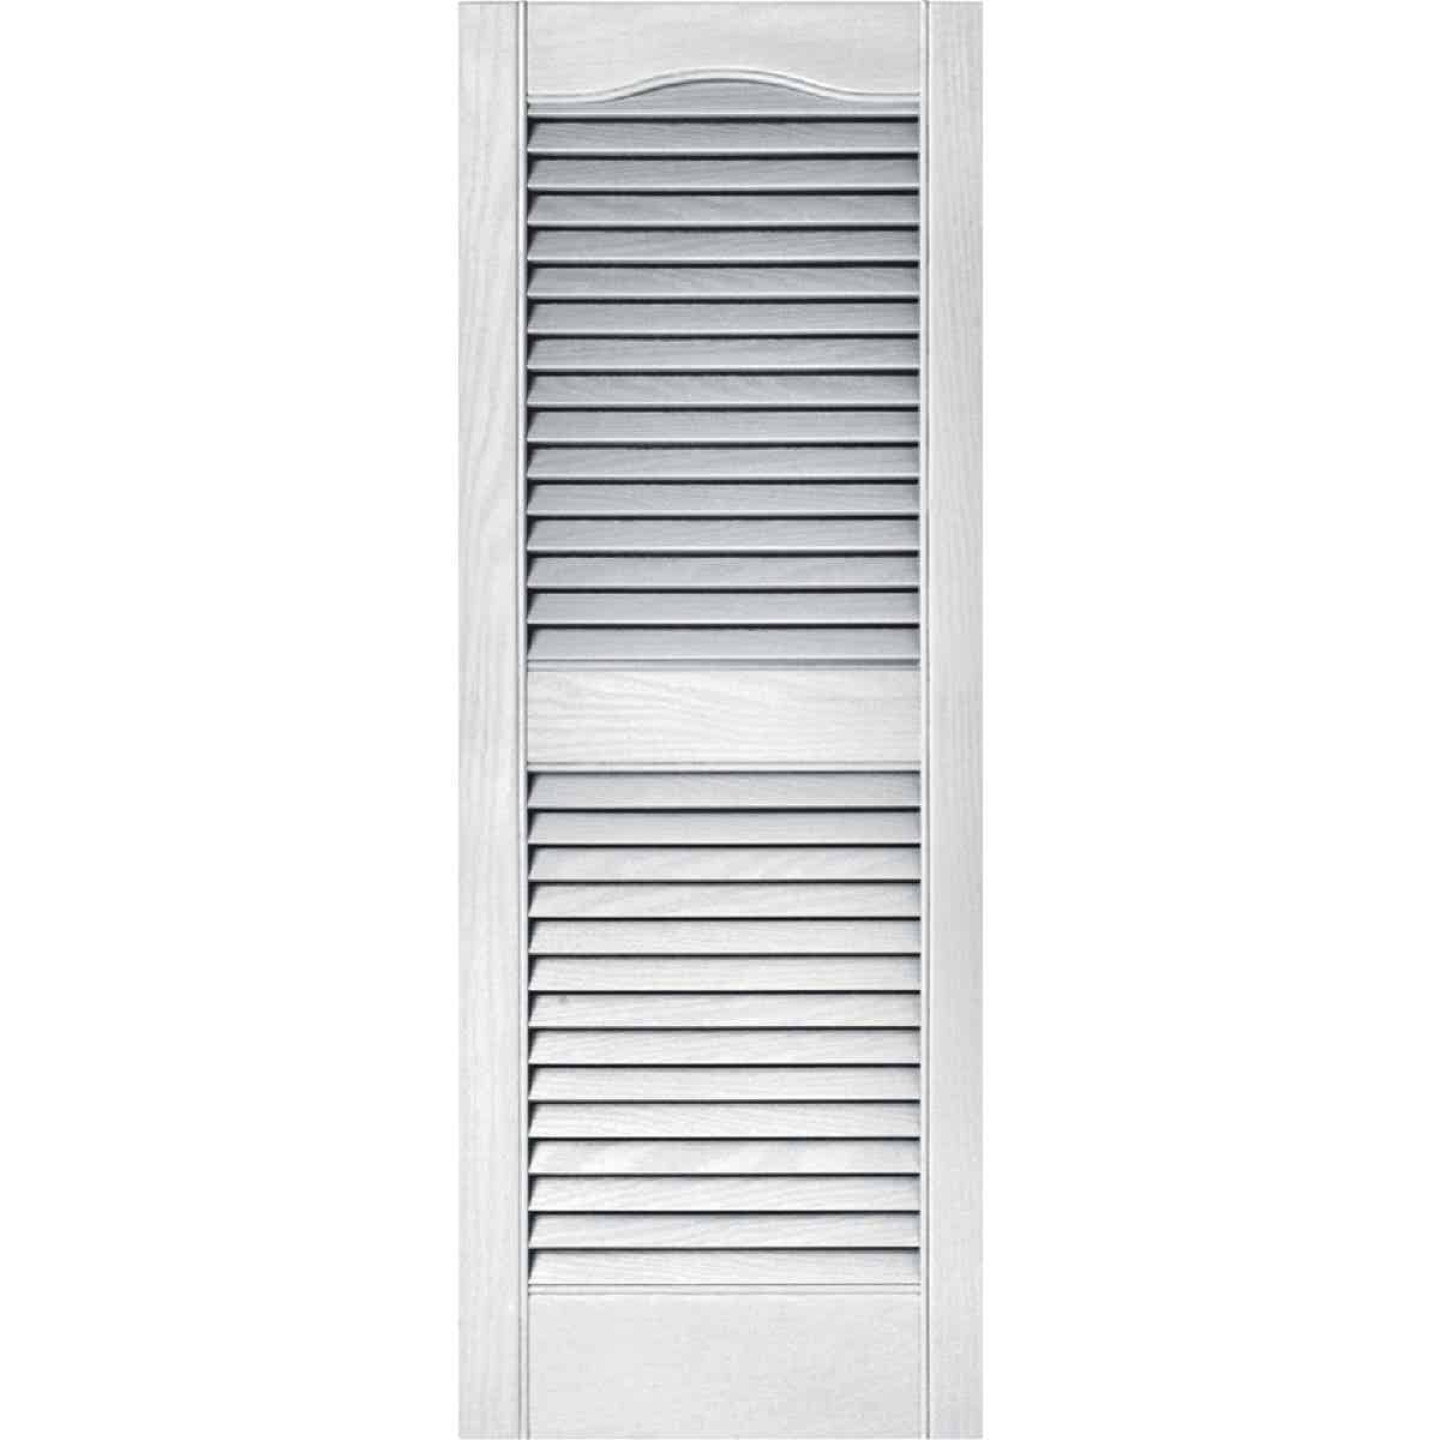 Builders Edge 15 In. x 39 In. Vinyl Louvered Shutter, (2-Pack) Image 1